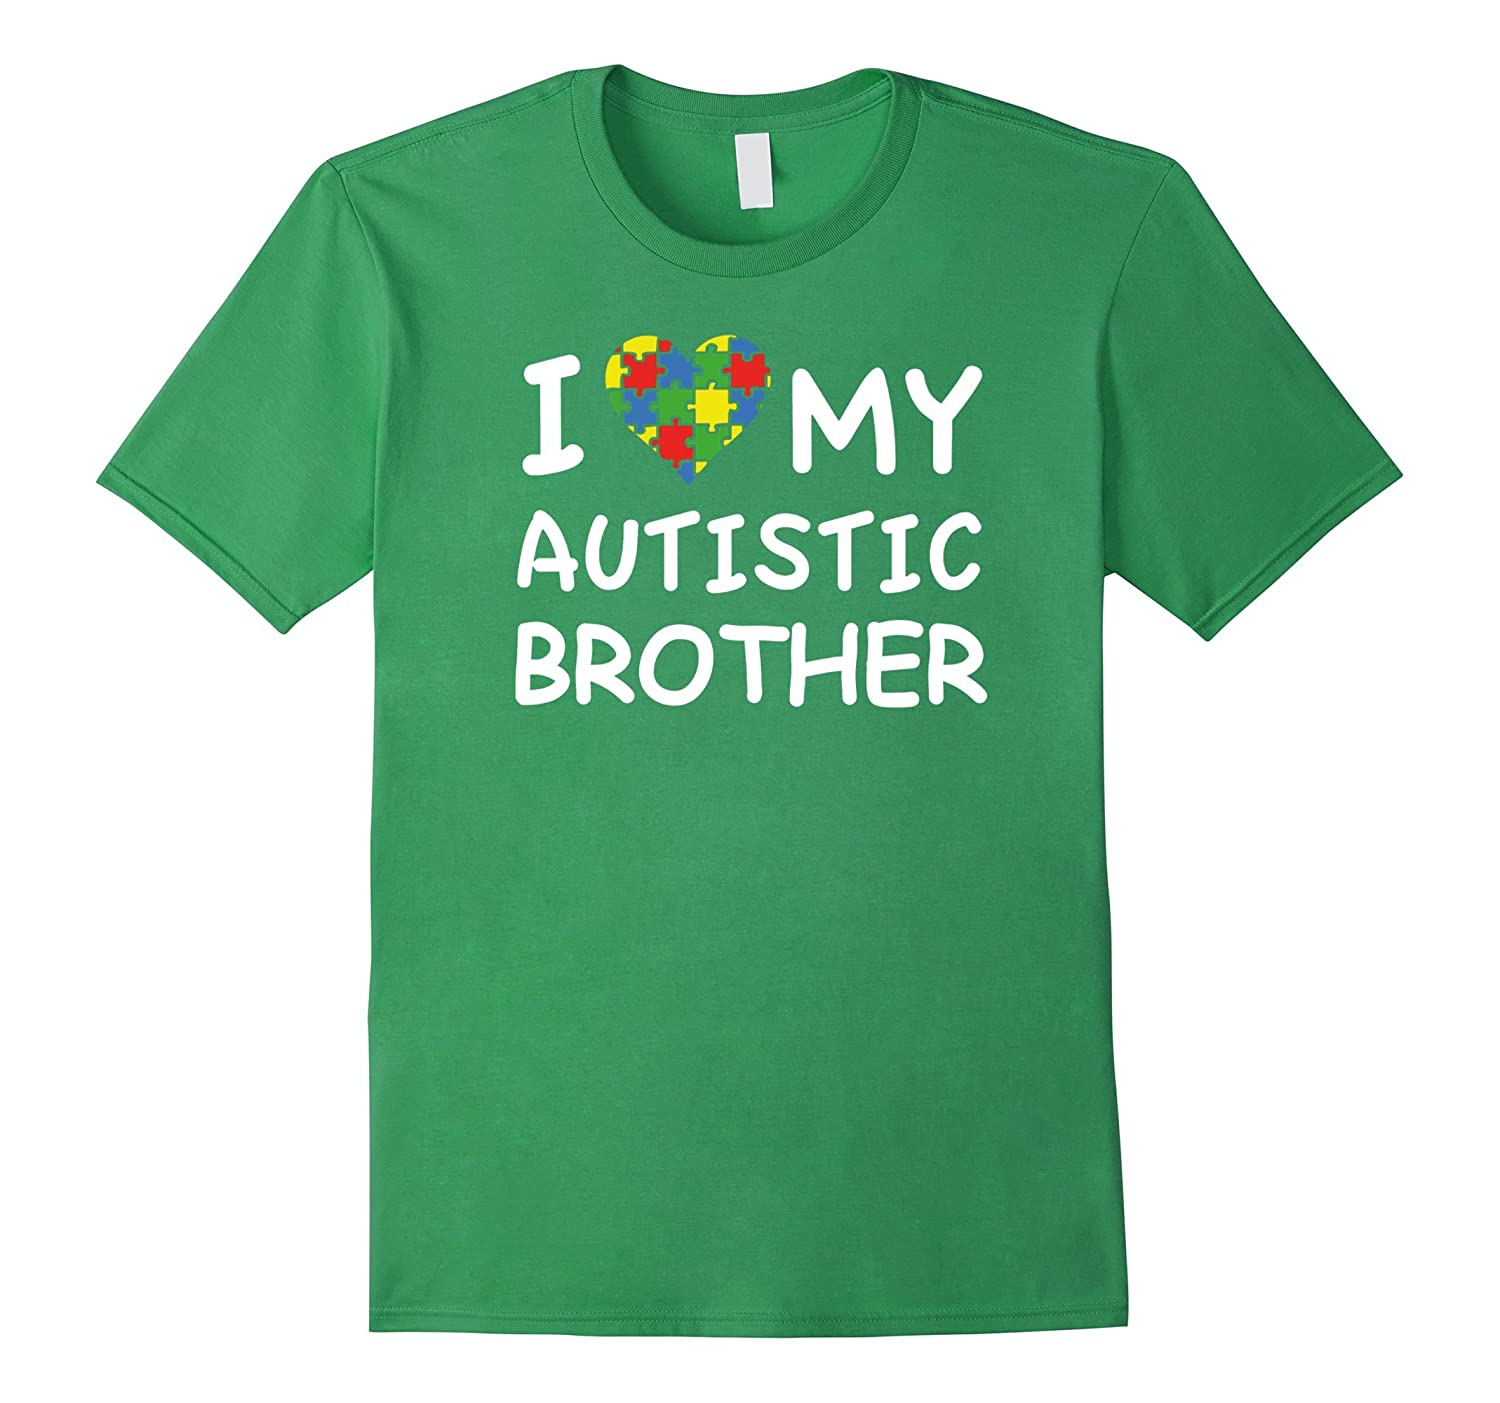 Autism Awareness T-shirt – I Love My Autistic Brother